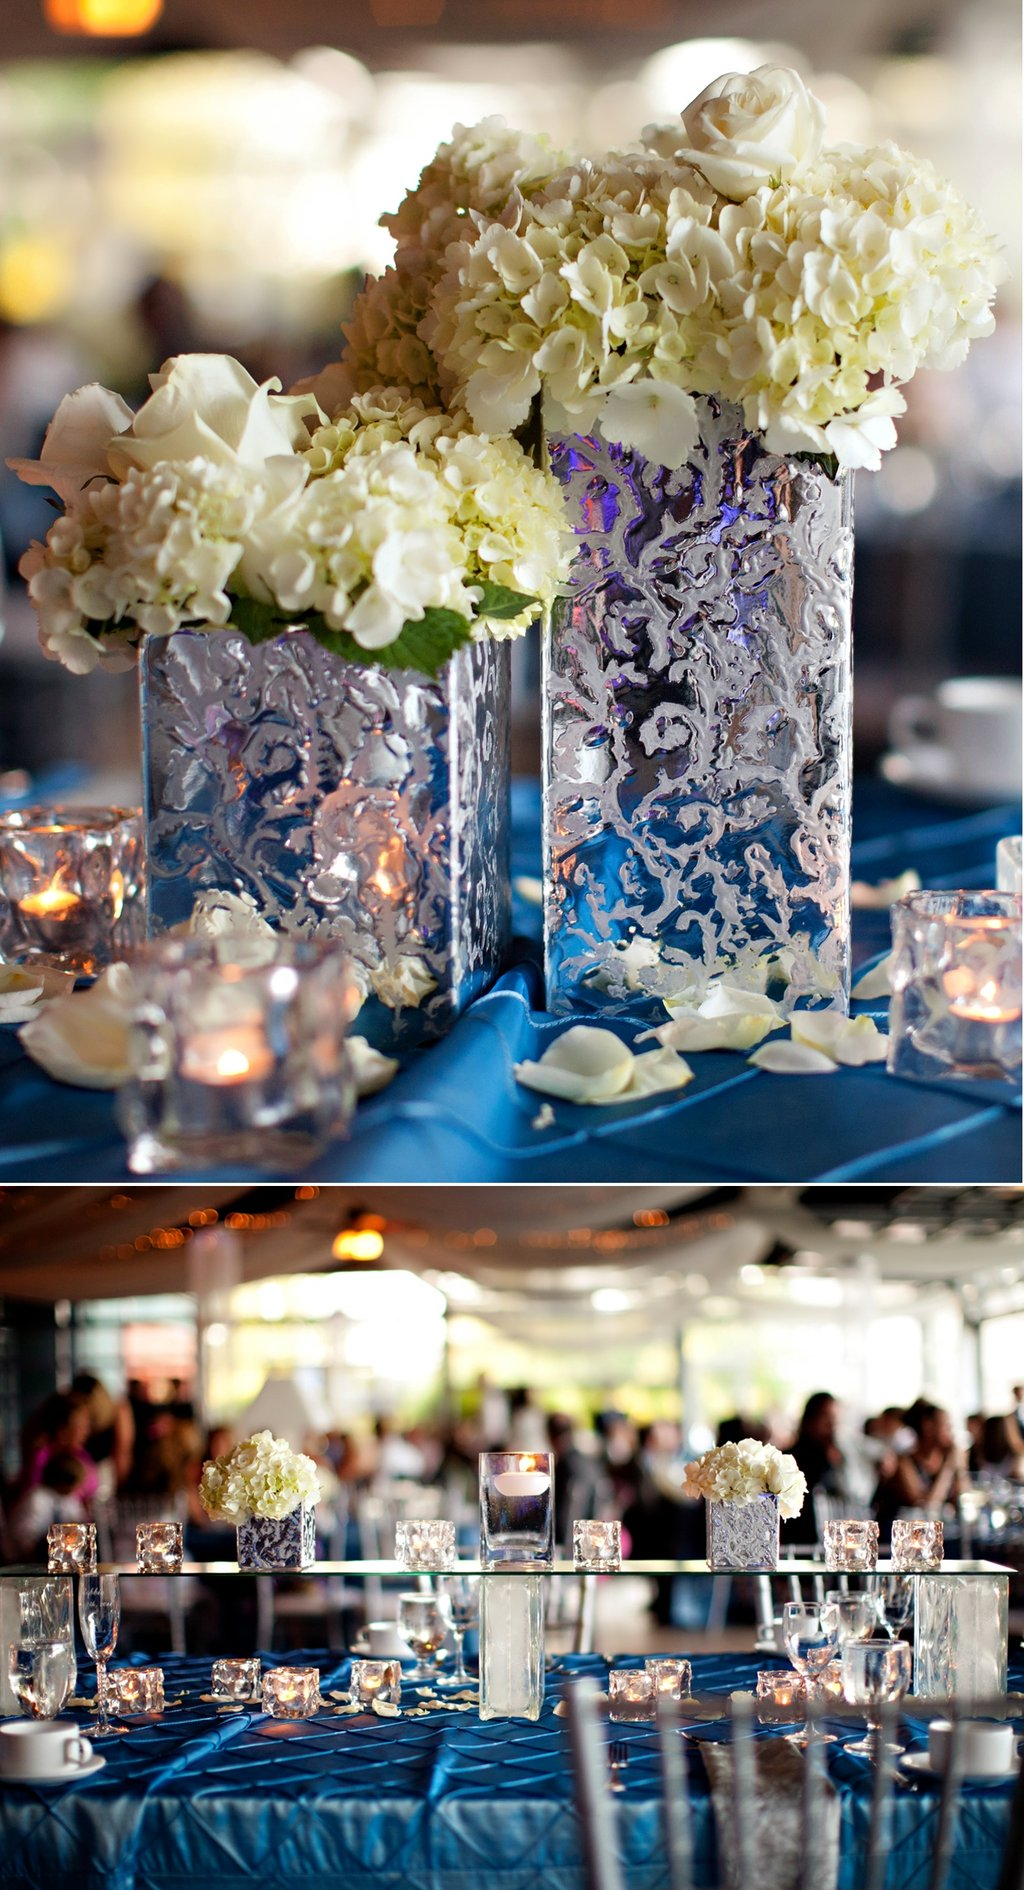 Real-weddings-ivory-silver-blue-wedding-decor-flowers.full